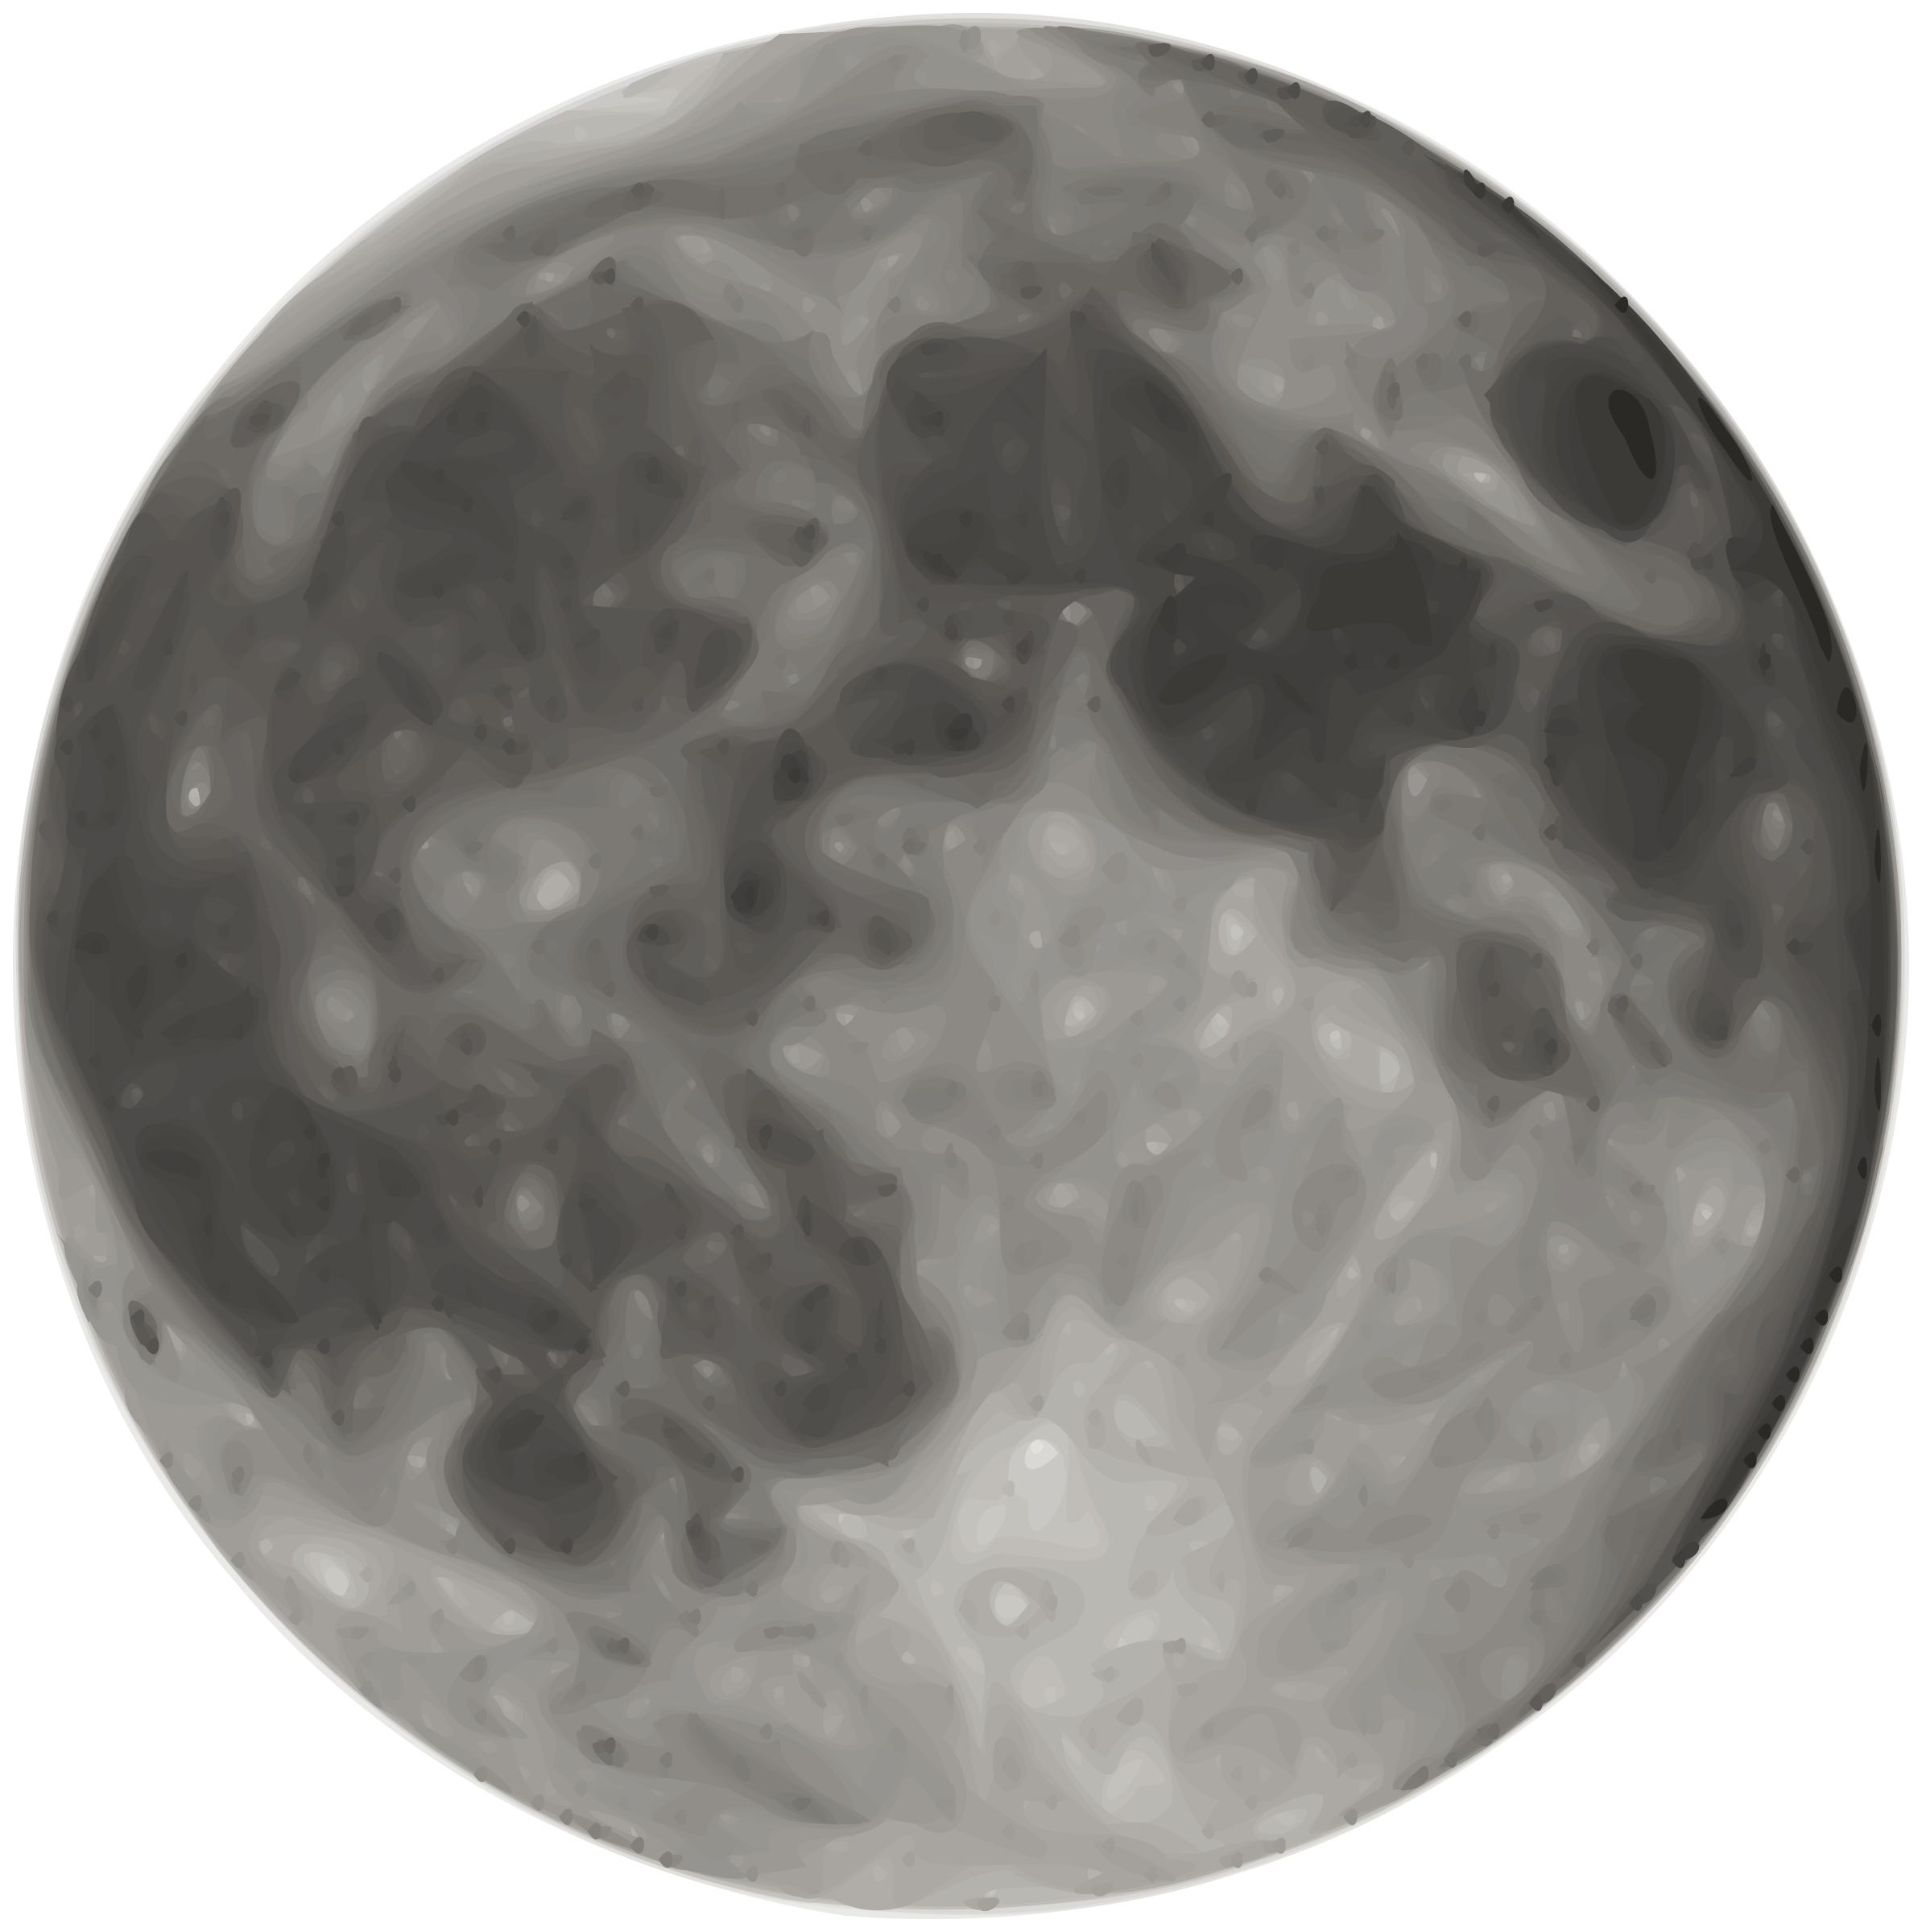 Full moon clipart images.